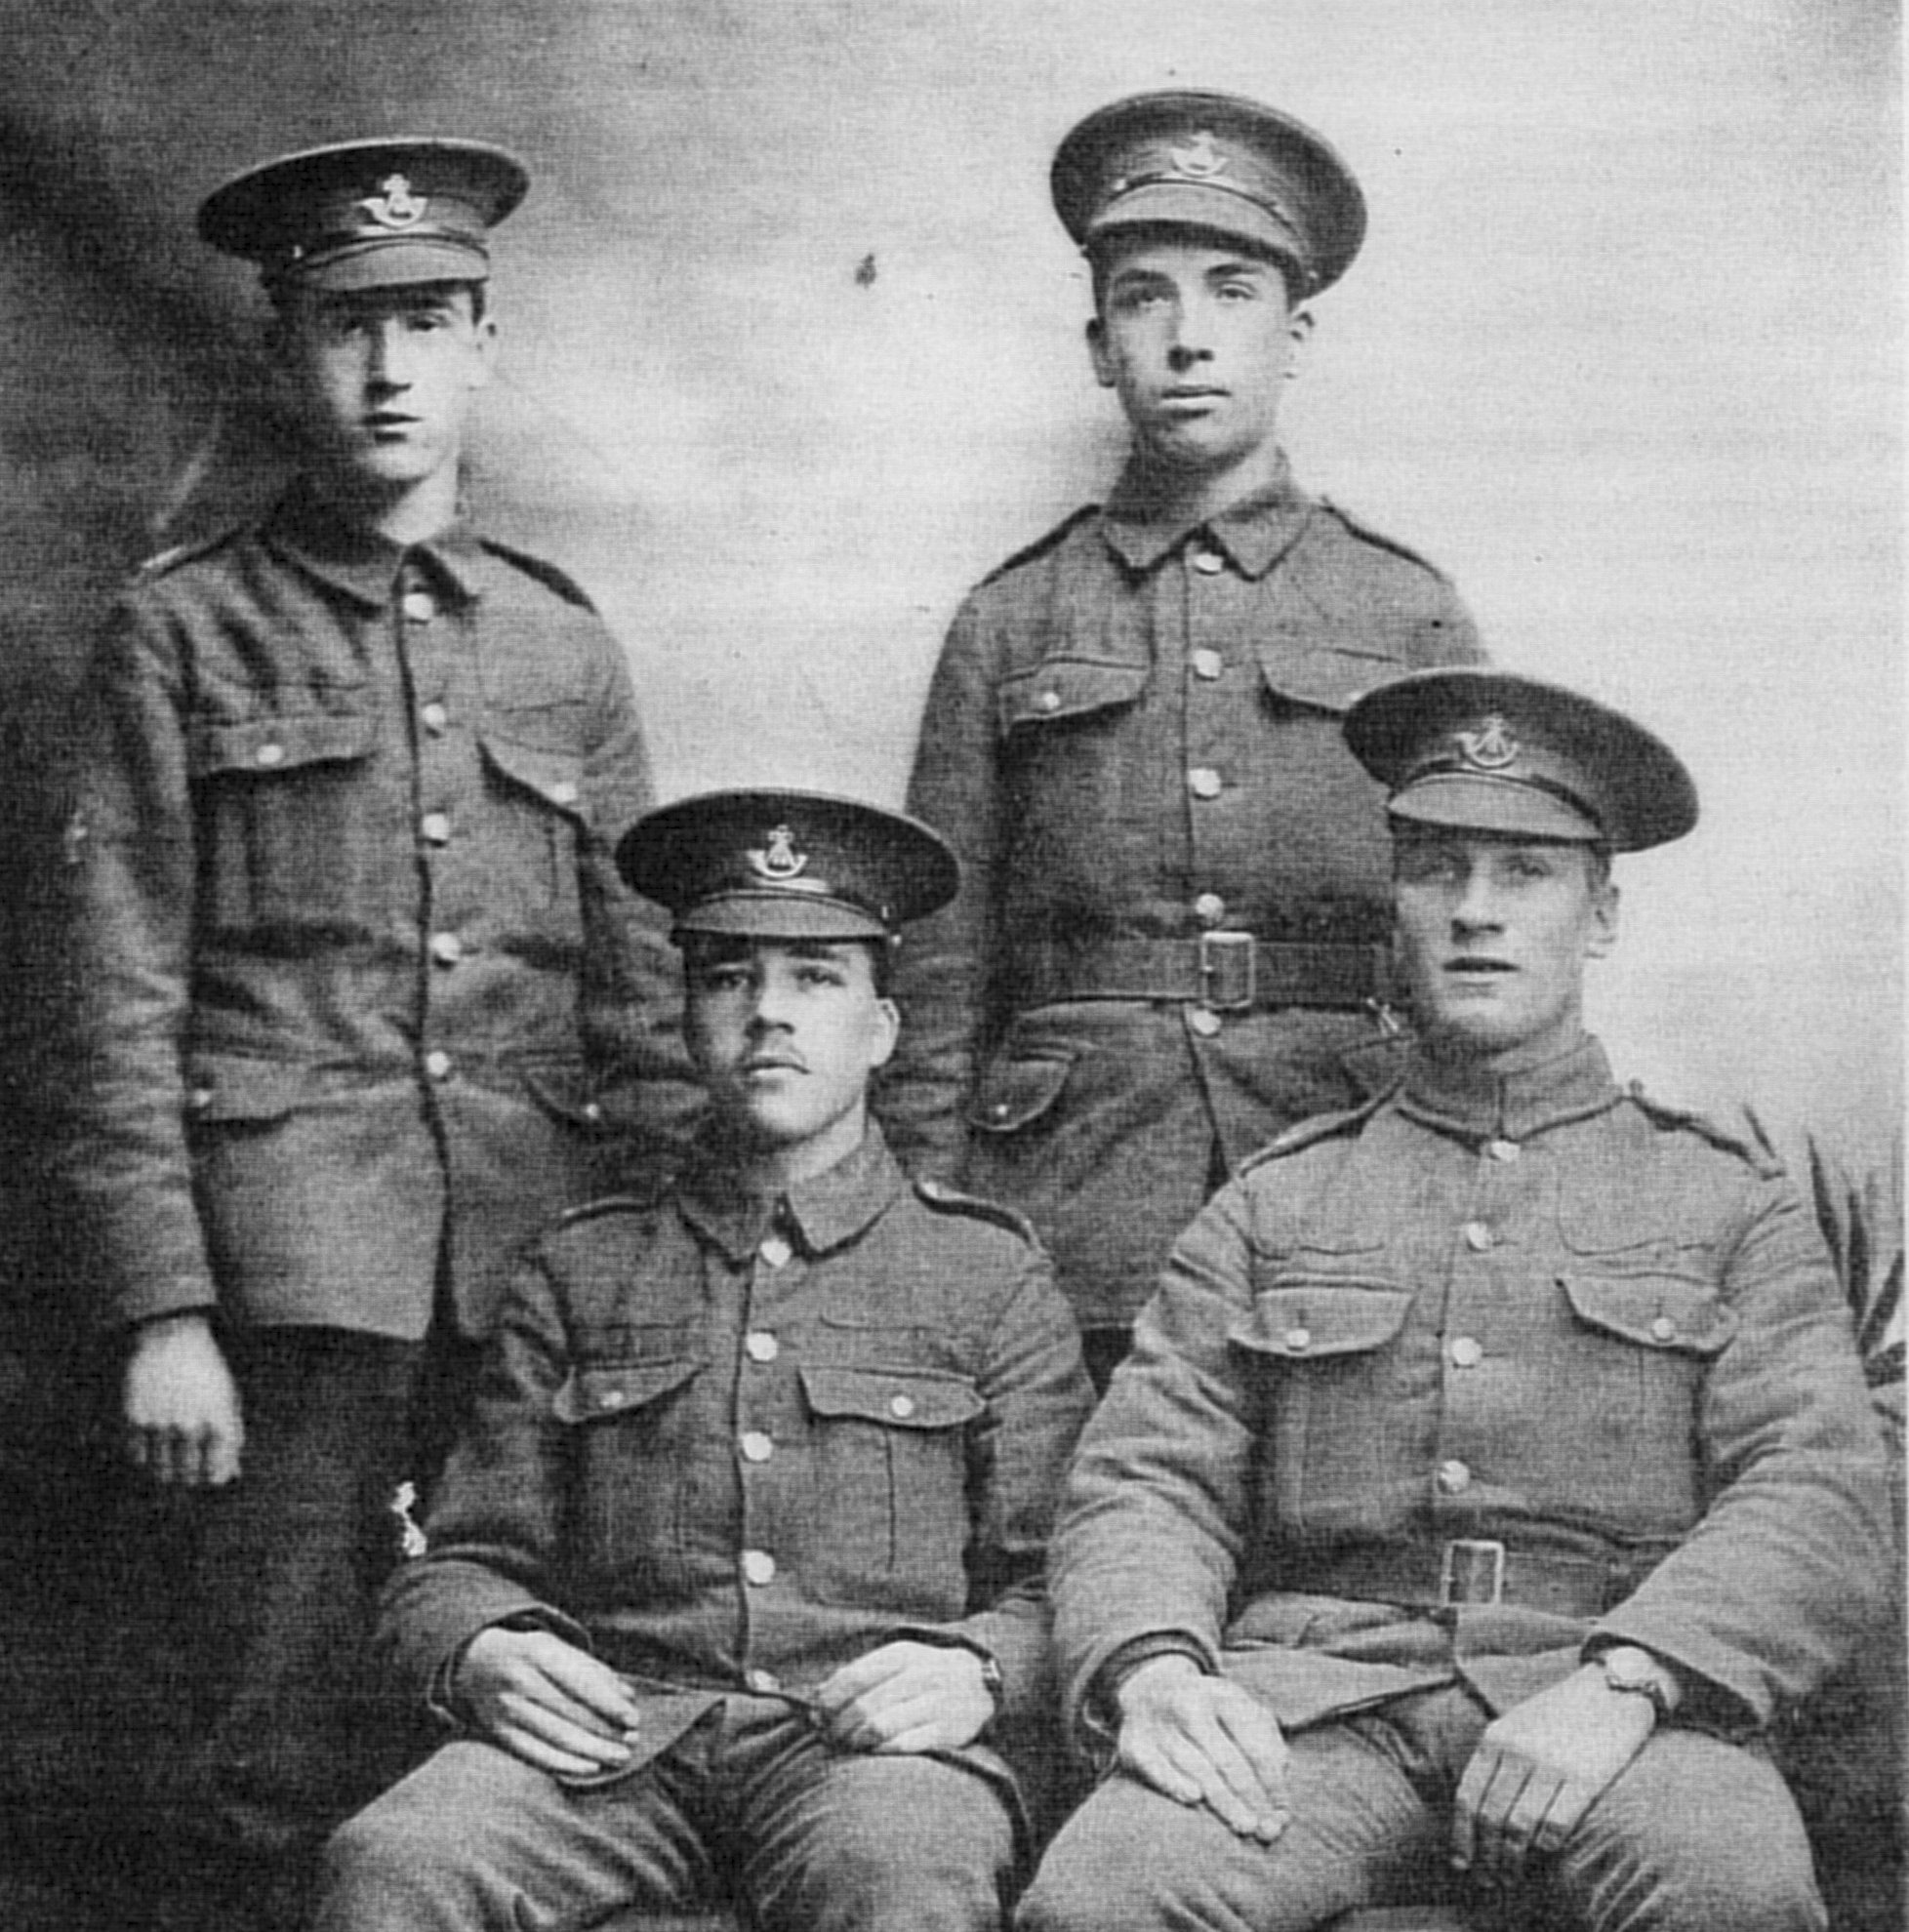 Grandpont soldiers 1915 cropped Jim Tallett